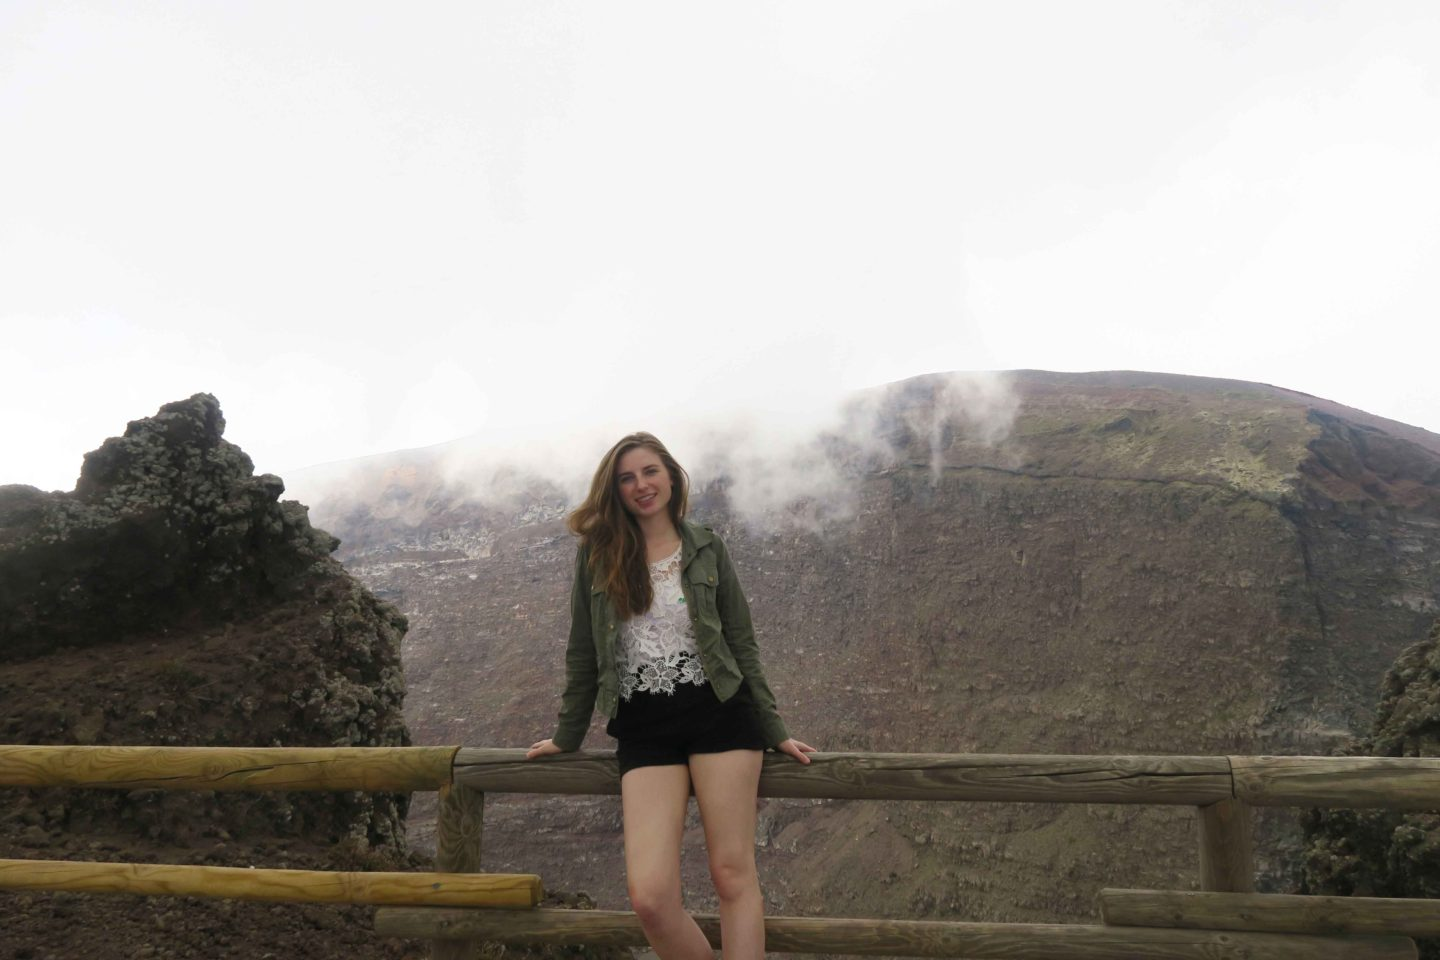 melissa carne on a day trip to mount vesuvius volcano in italy